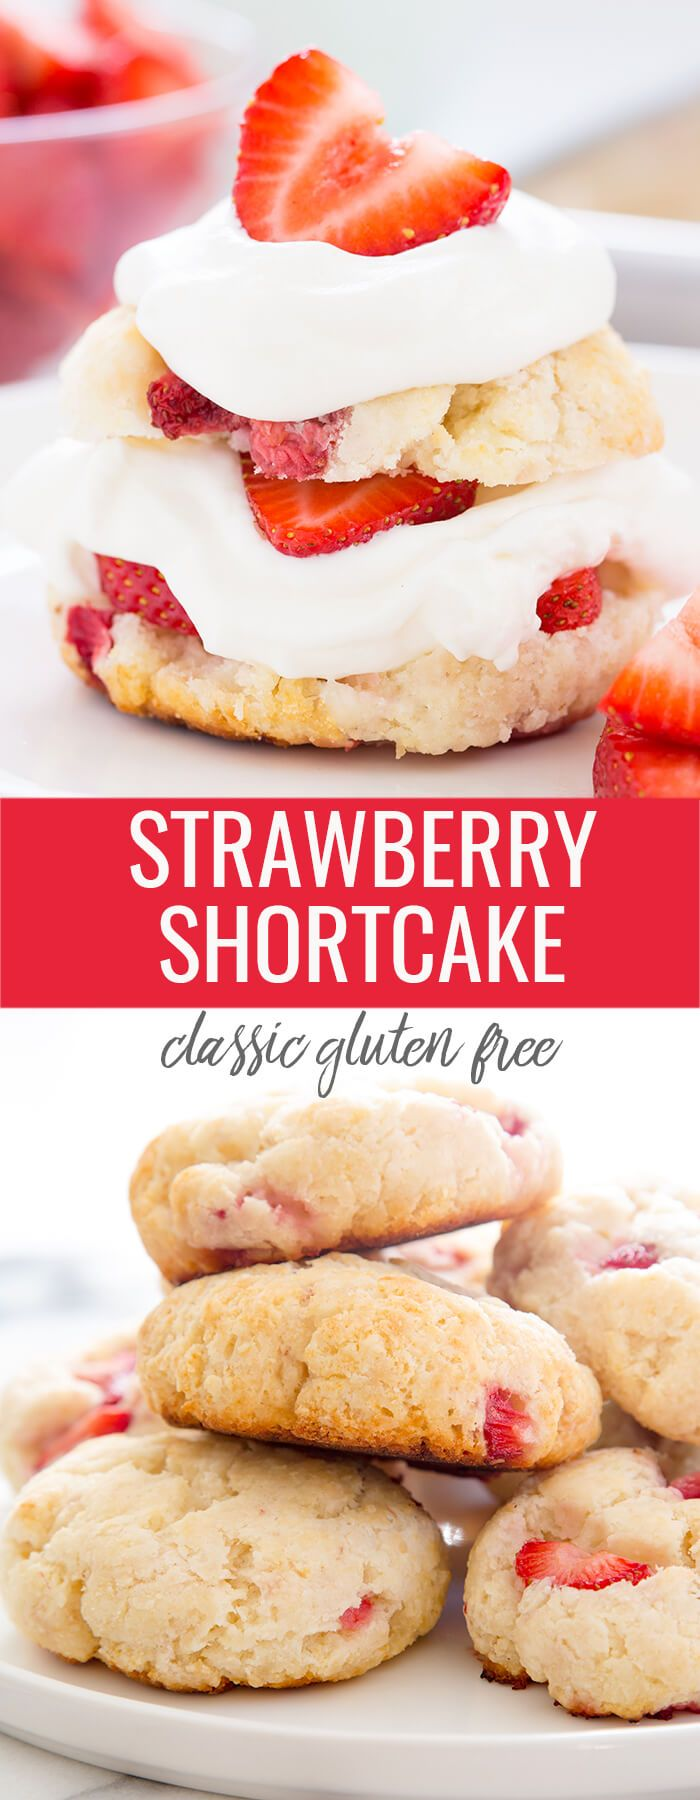 This easy gluten free strawberry shortcake recipe, made from scratch, is the classic summer dessert that everyone loves.